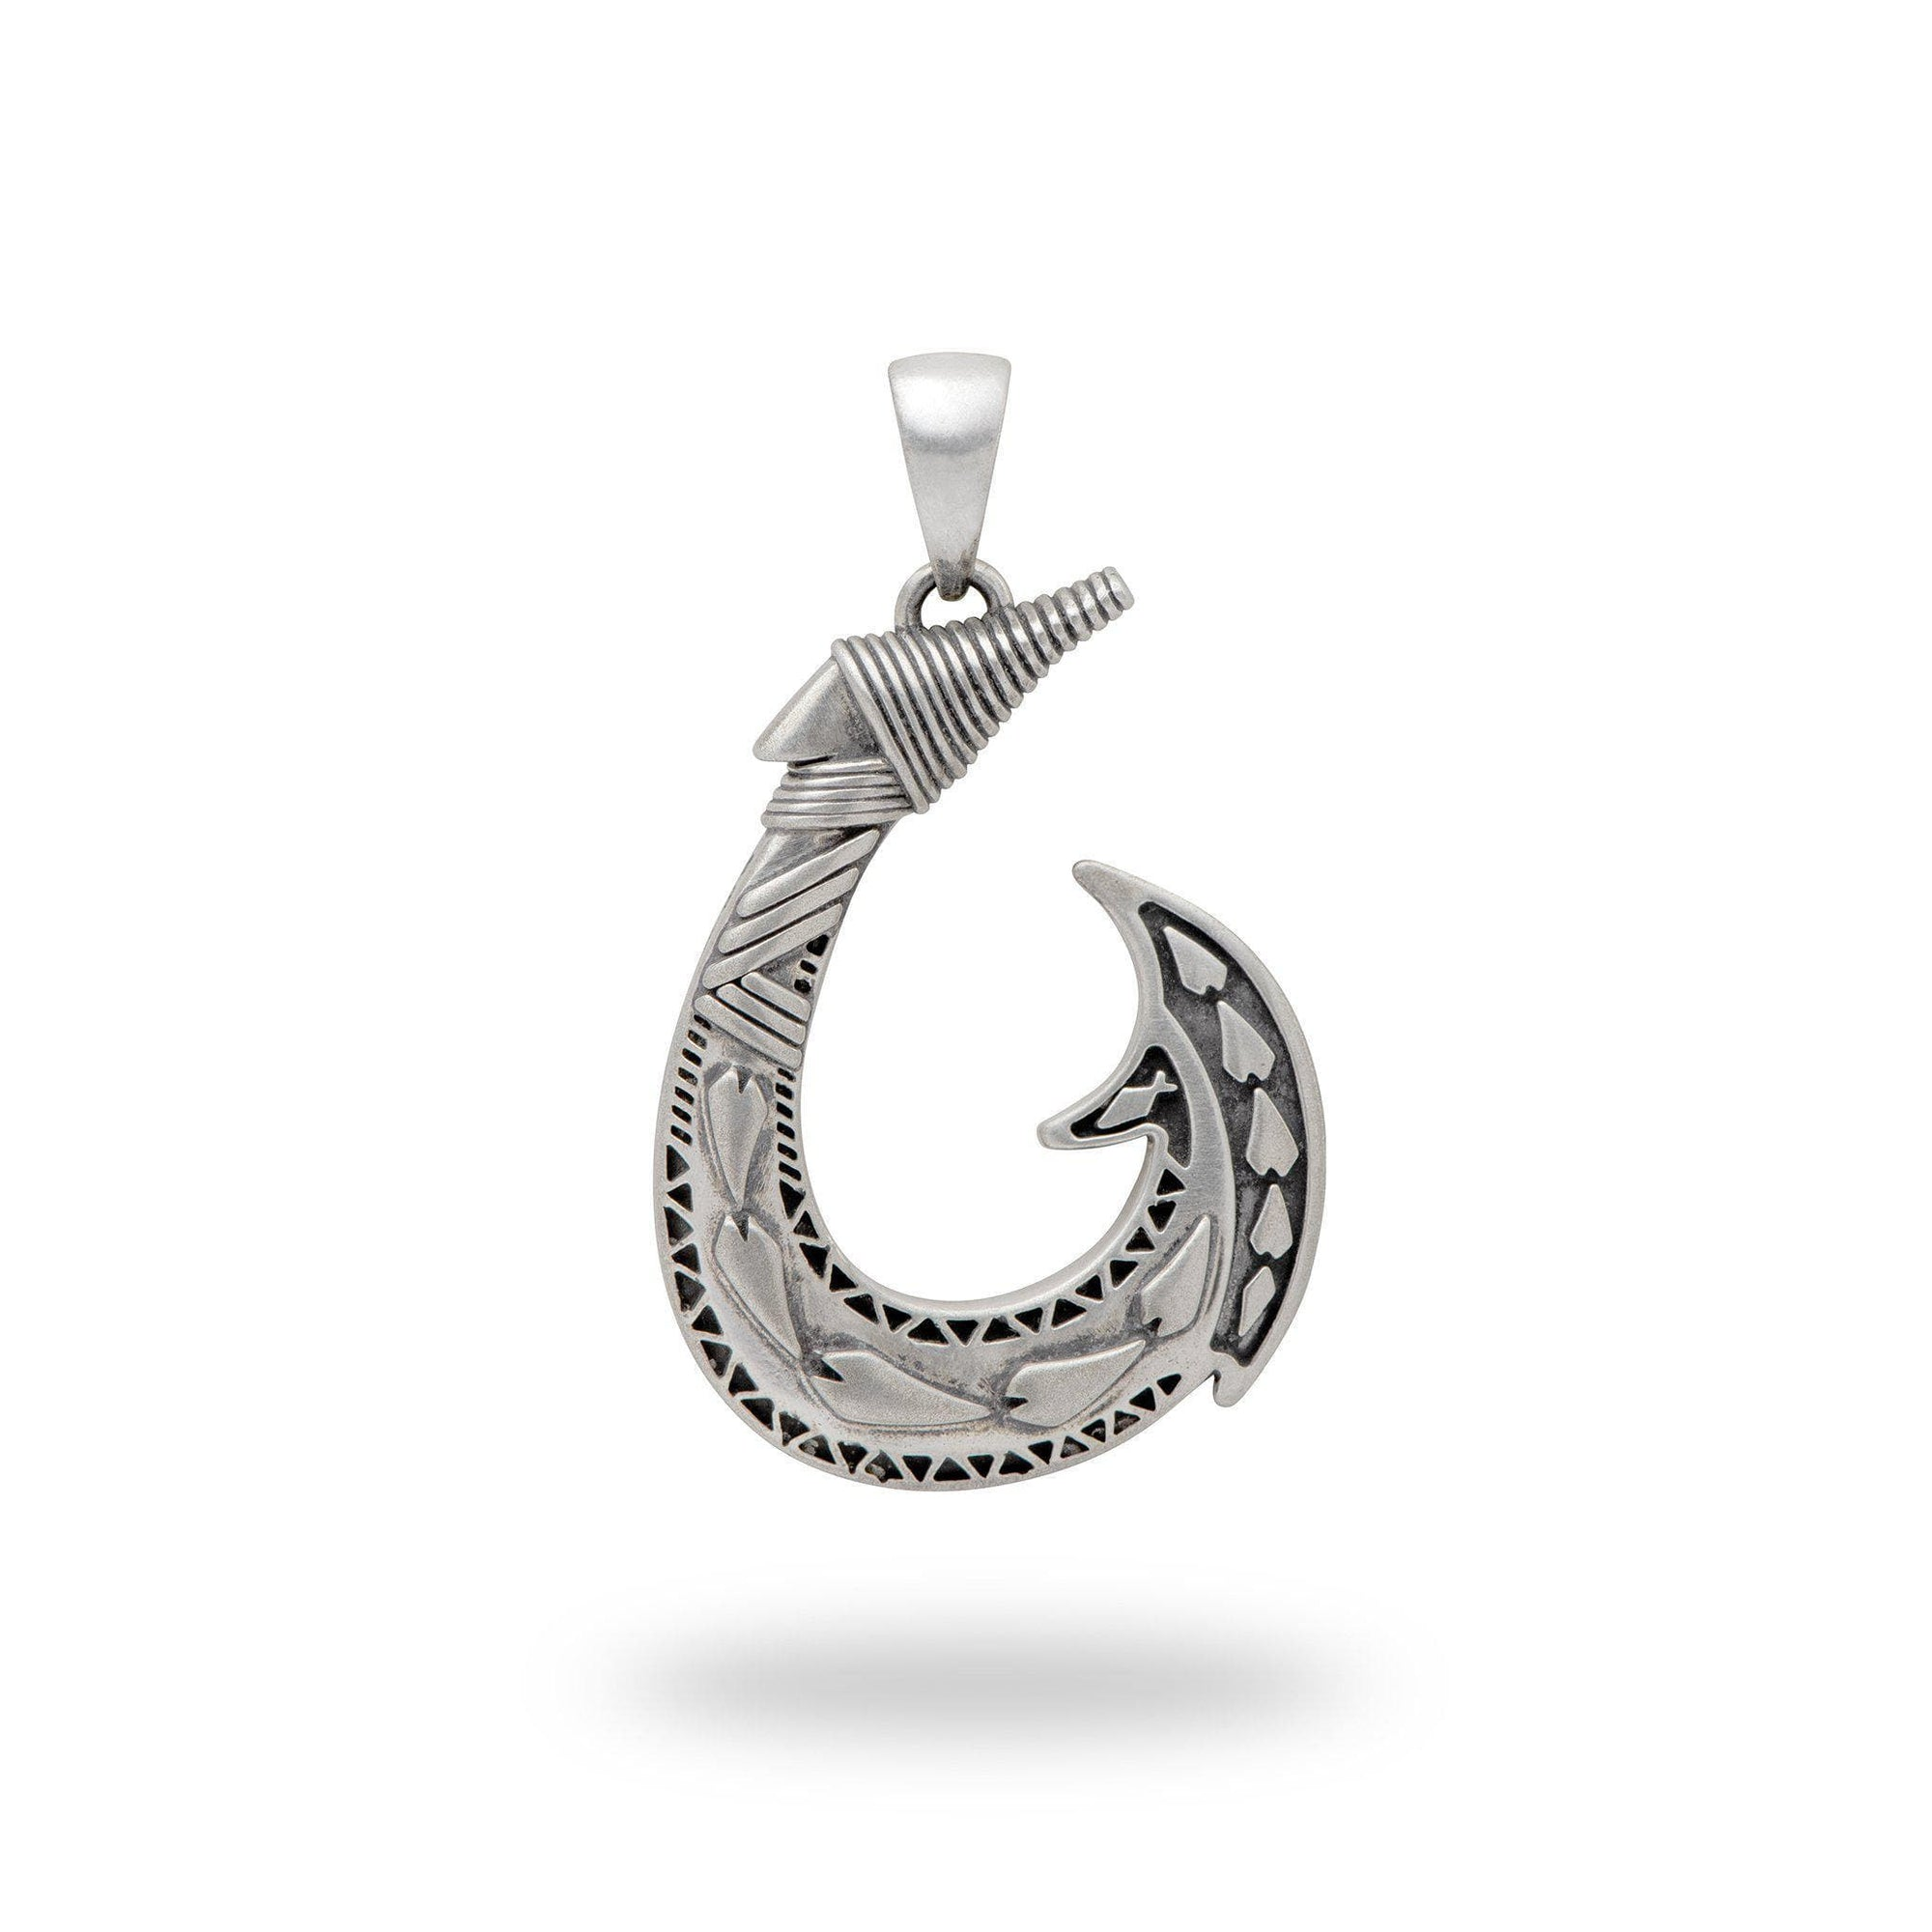 Fish Hook Pendant in Sterling Silver - Maui Divers Jewelry